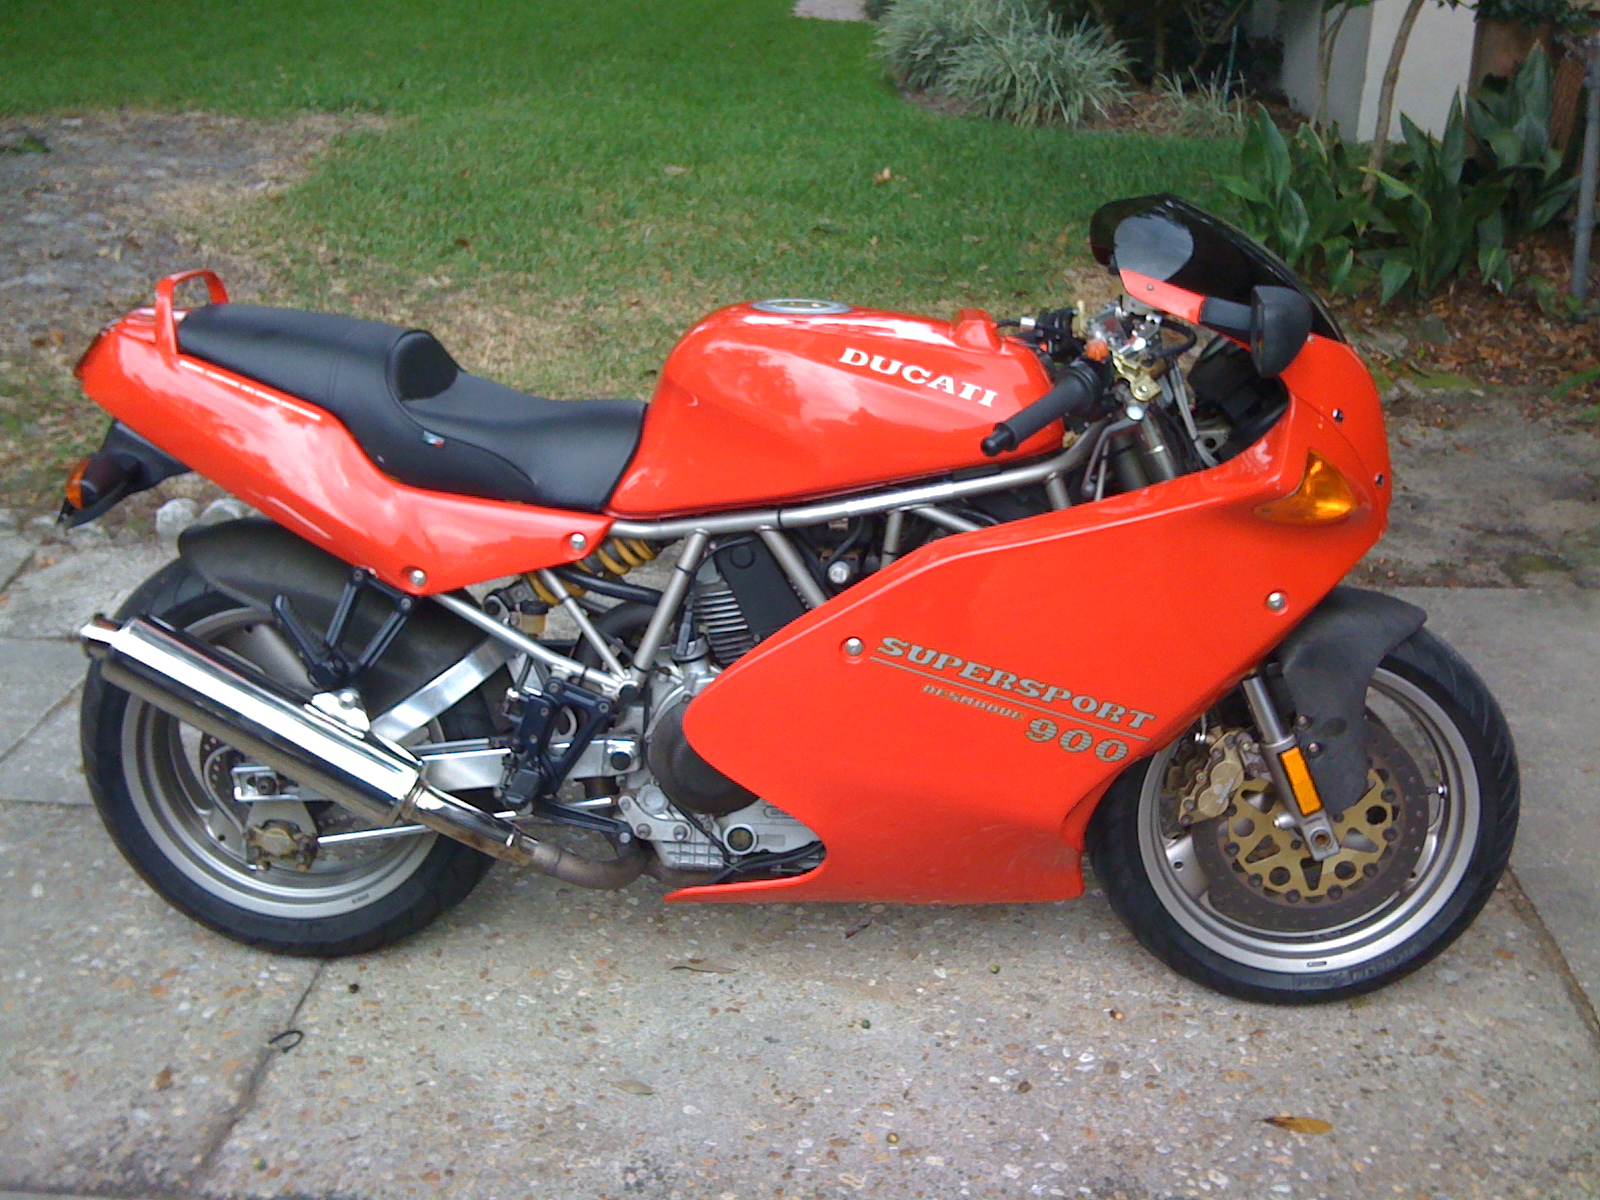 Ducati 900 SS 1994 images #78853